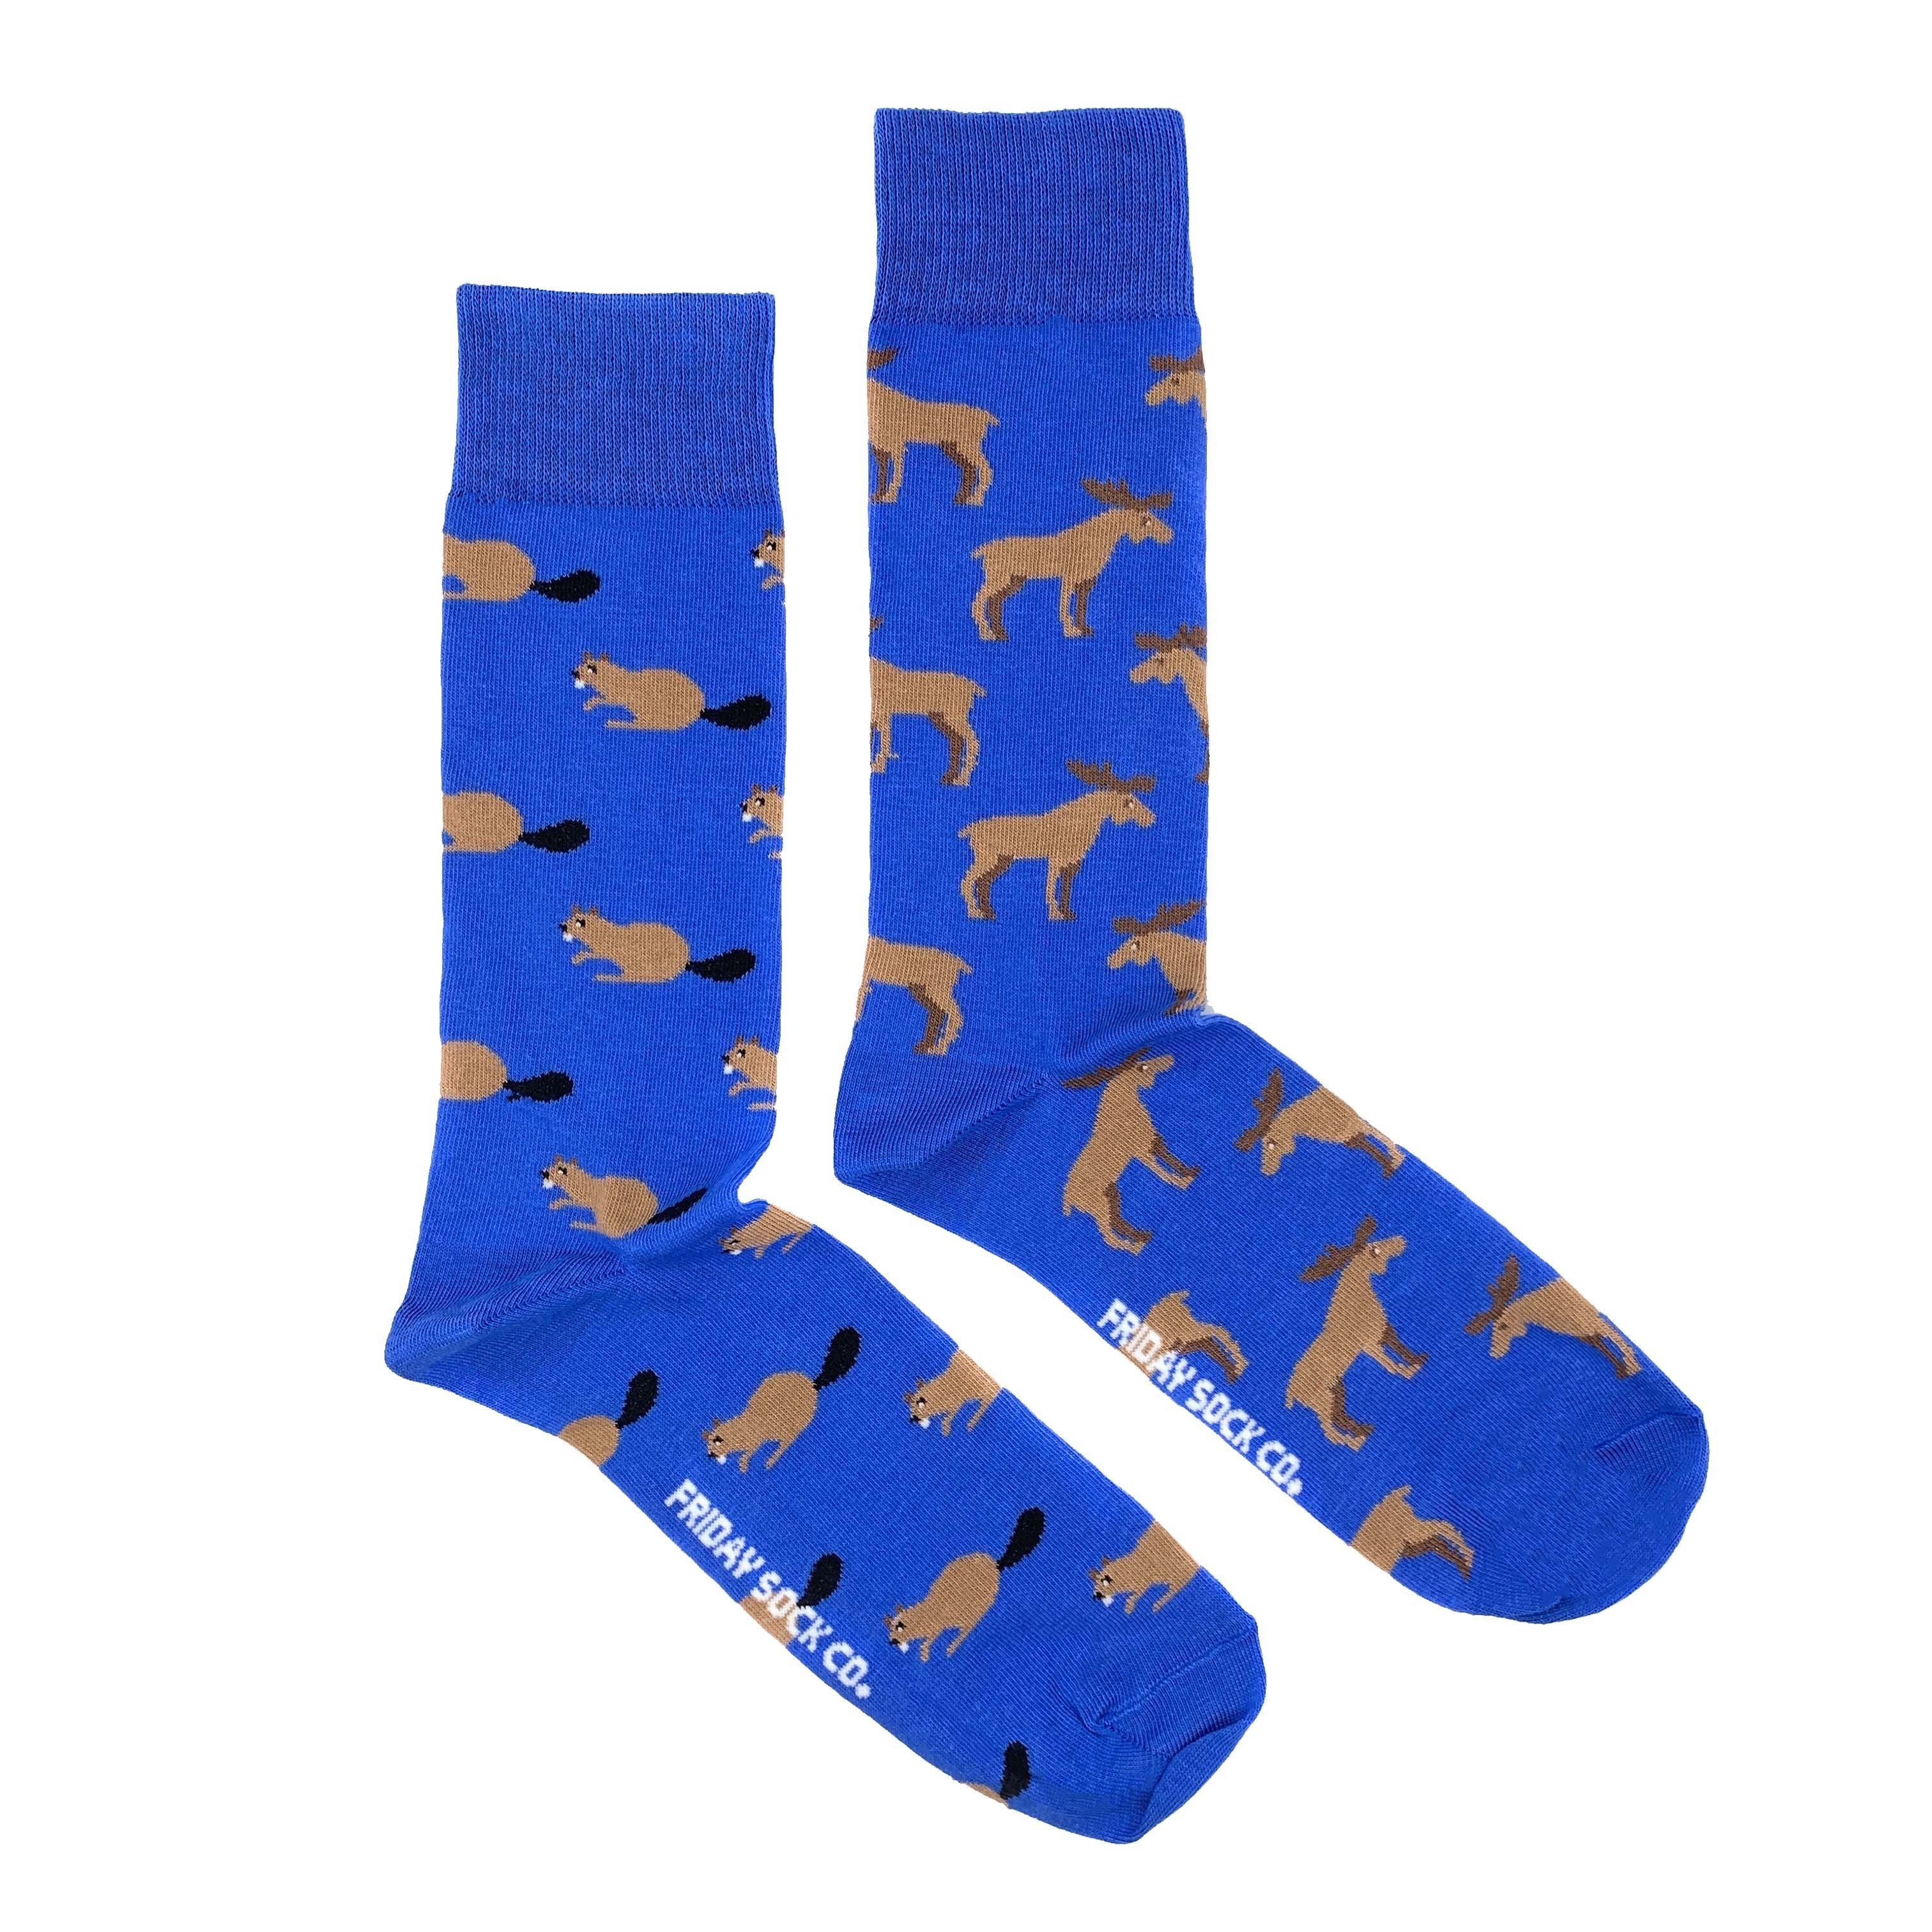 Men's Midcalf Socks - Moose Beaver